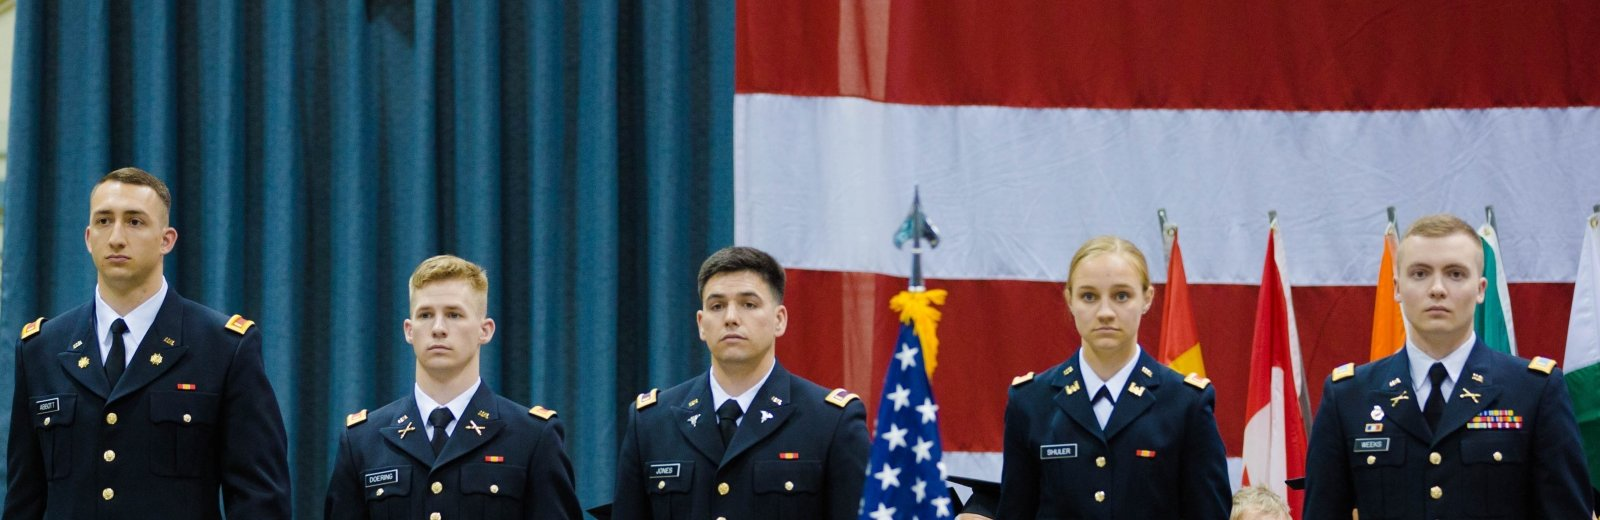 Four Army ROTC cadets and one Air Force ROTC cadet stand at attention on stage at commencement. American flag in background and foreground. Headed caps of graduates in audience in foreground too.